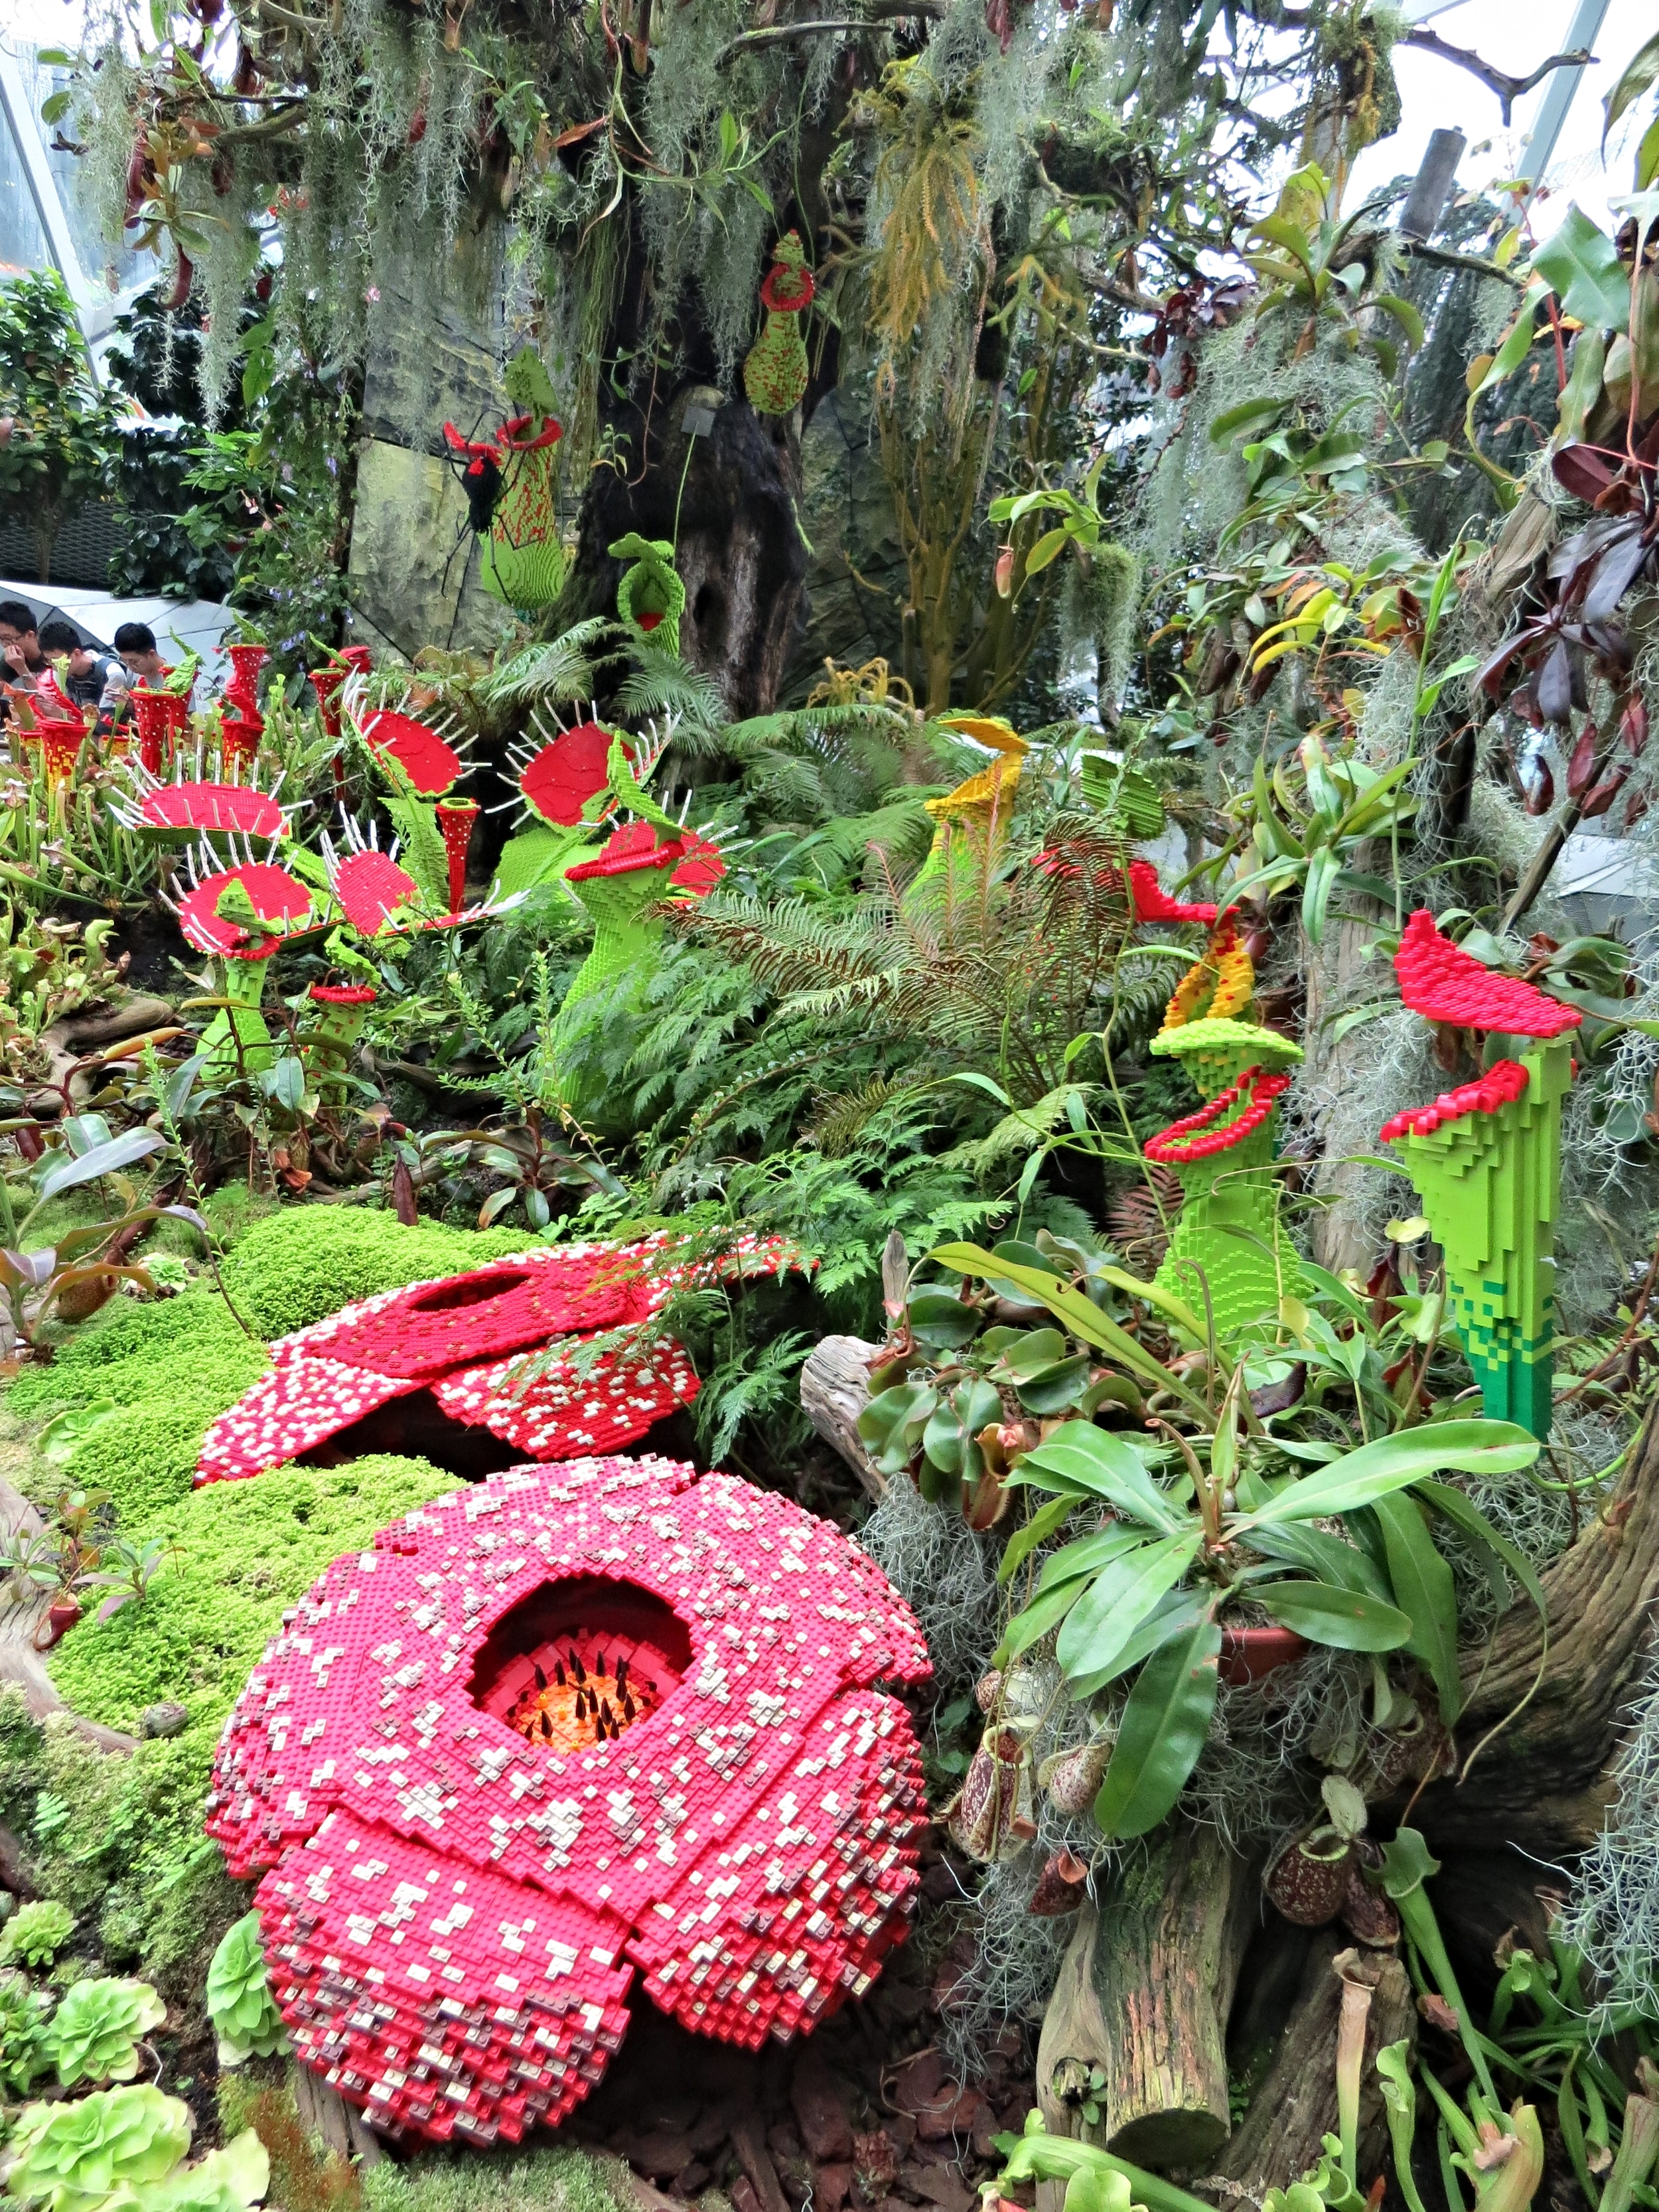 Lego Garden of Carnivorous Plants